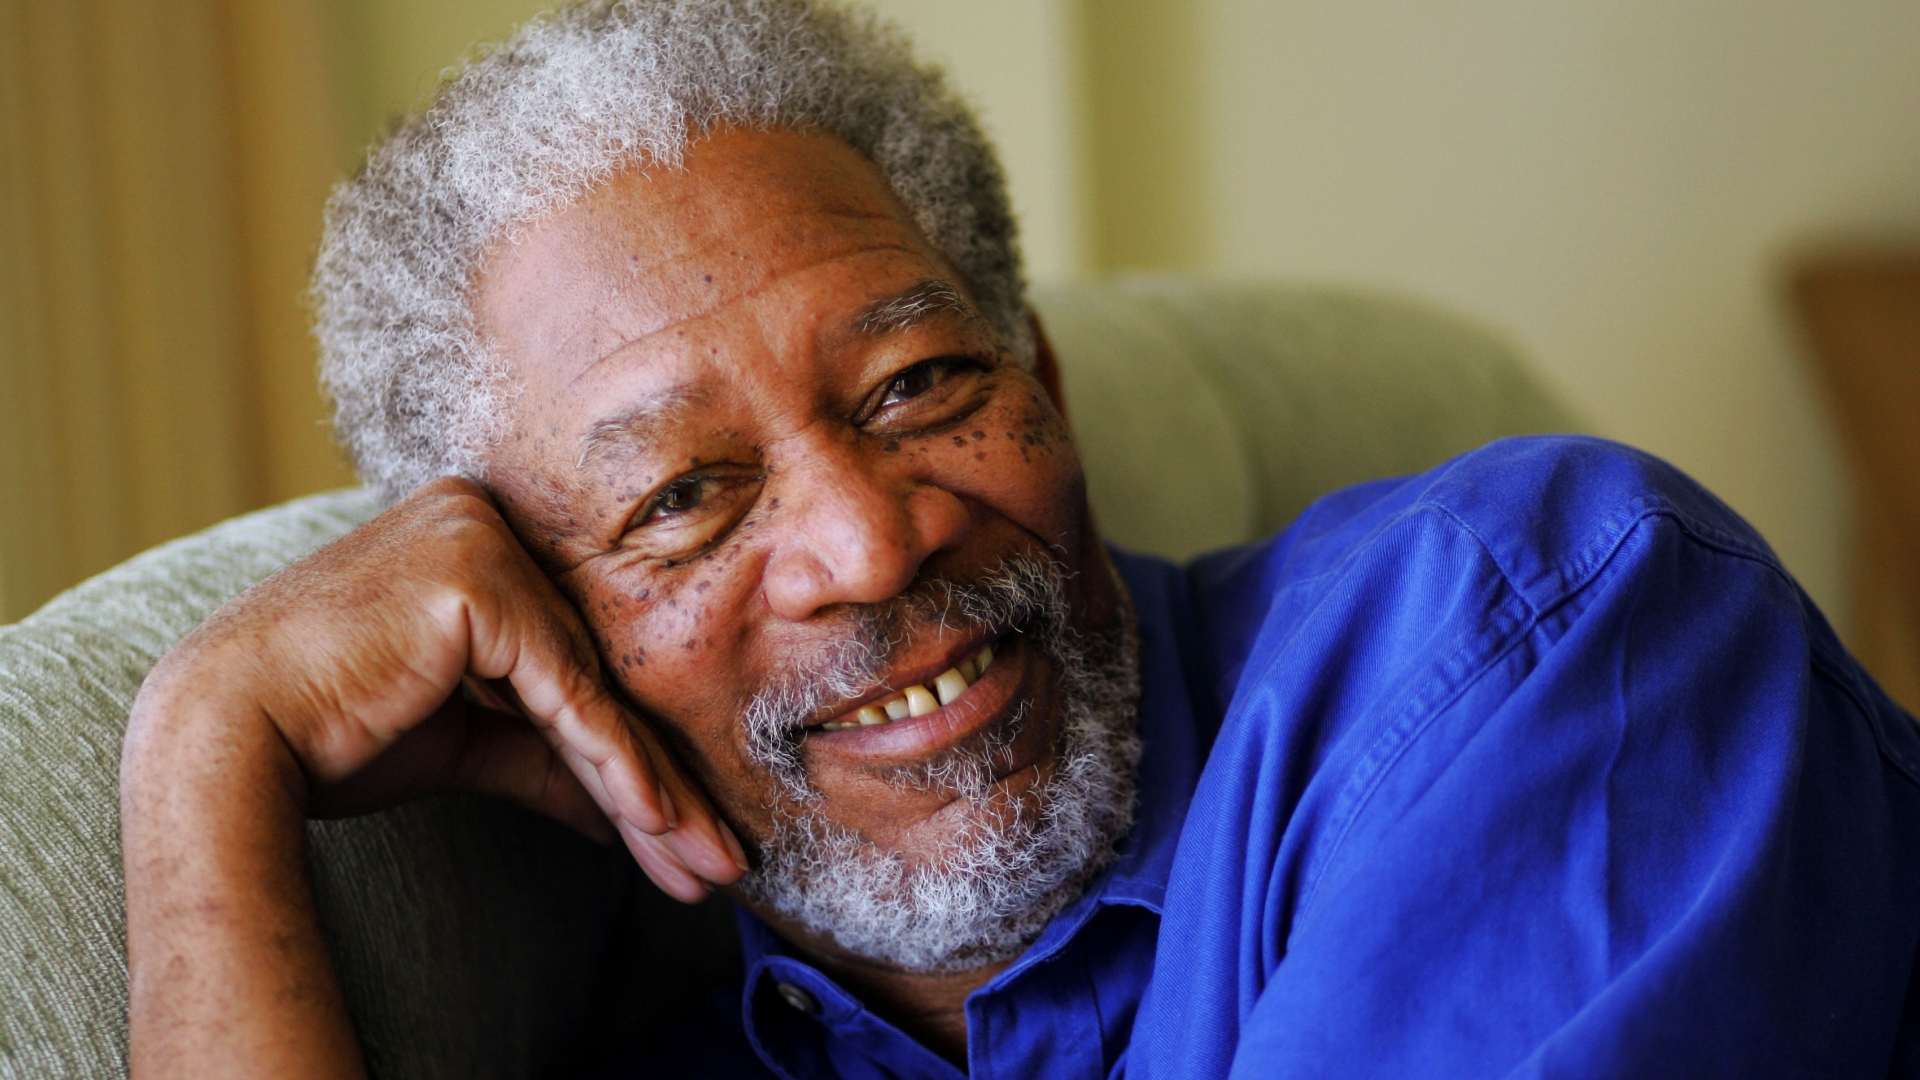 morgan freeman smile wallpaper 59379